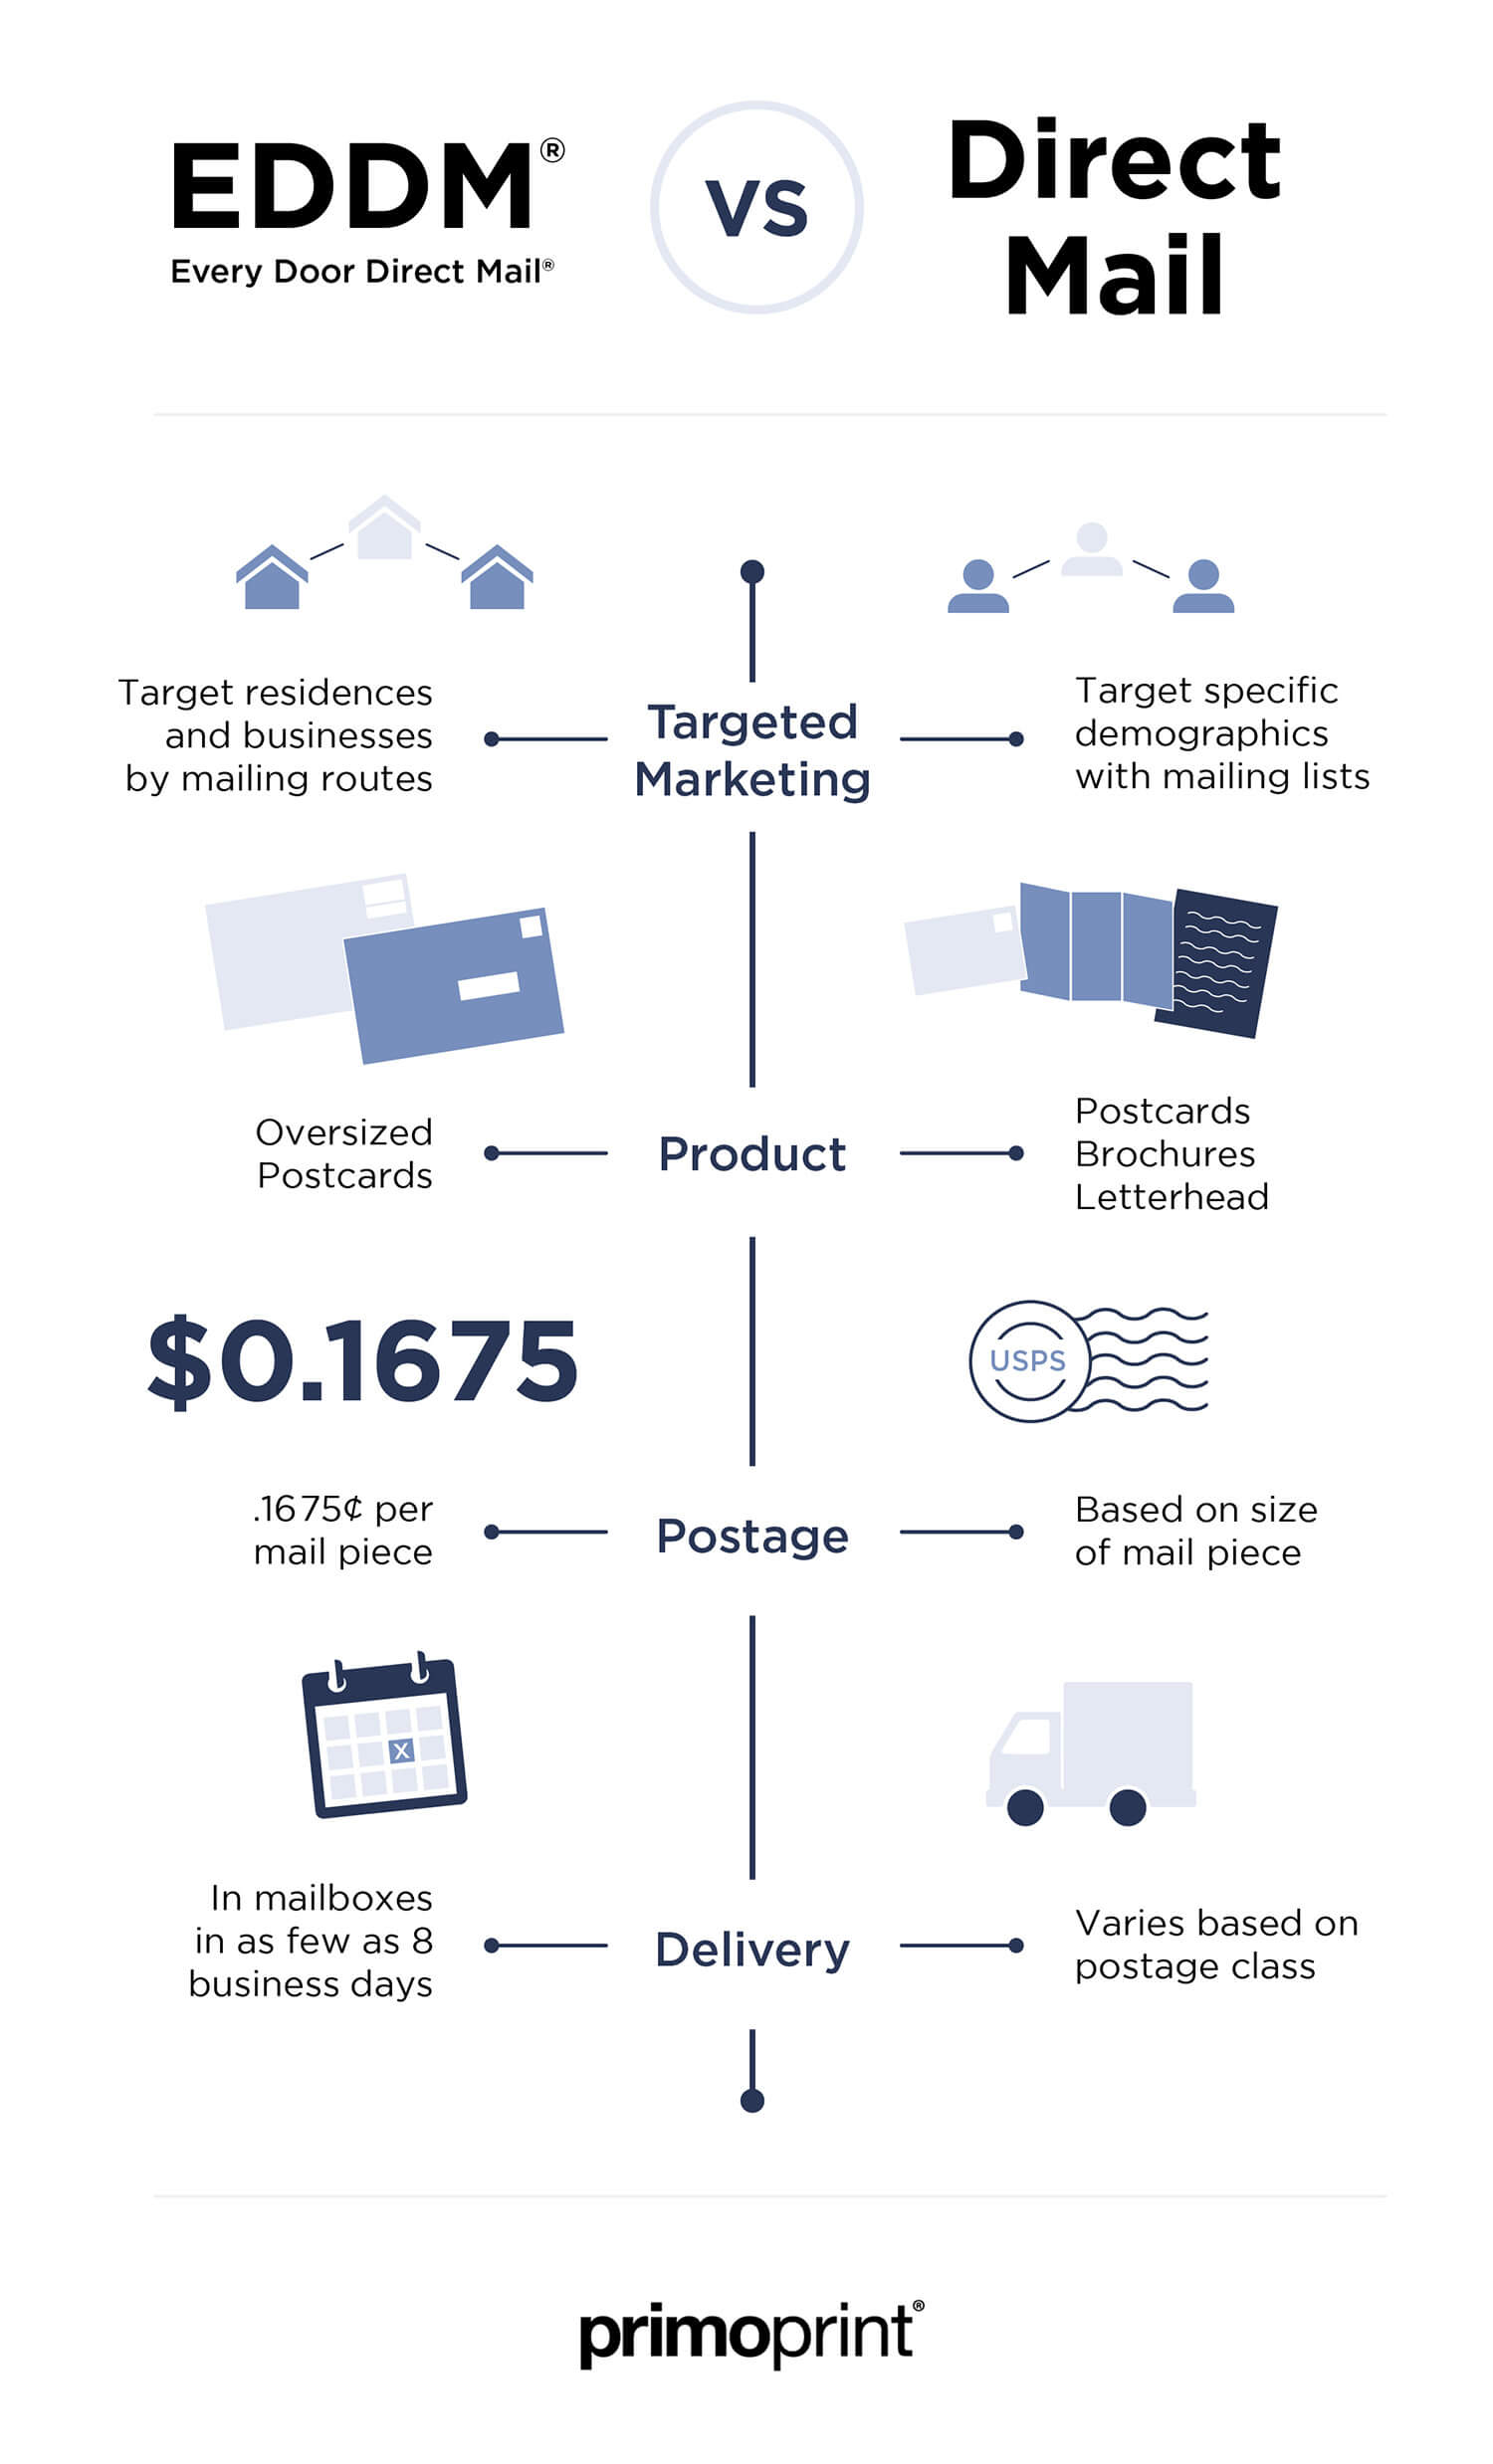 The difference between EDDM® and Direct Mail